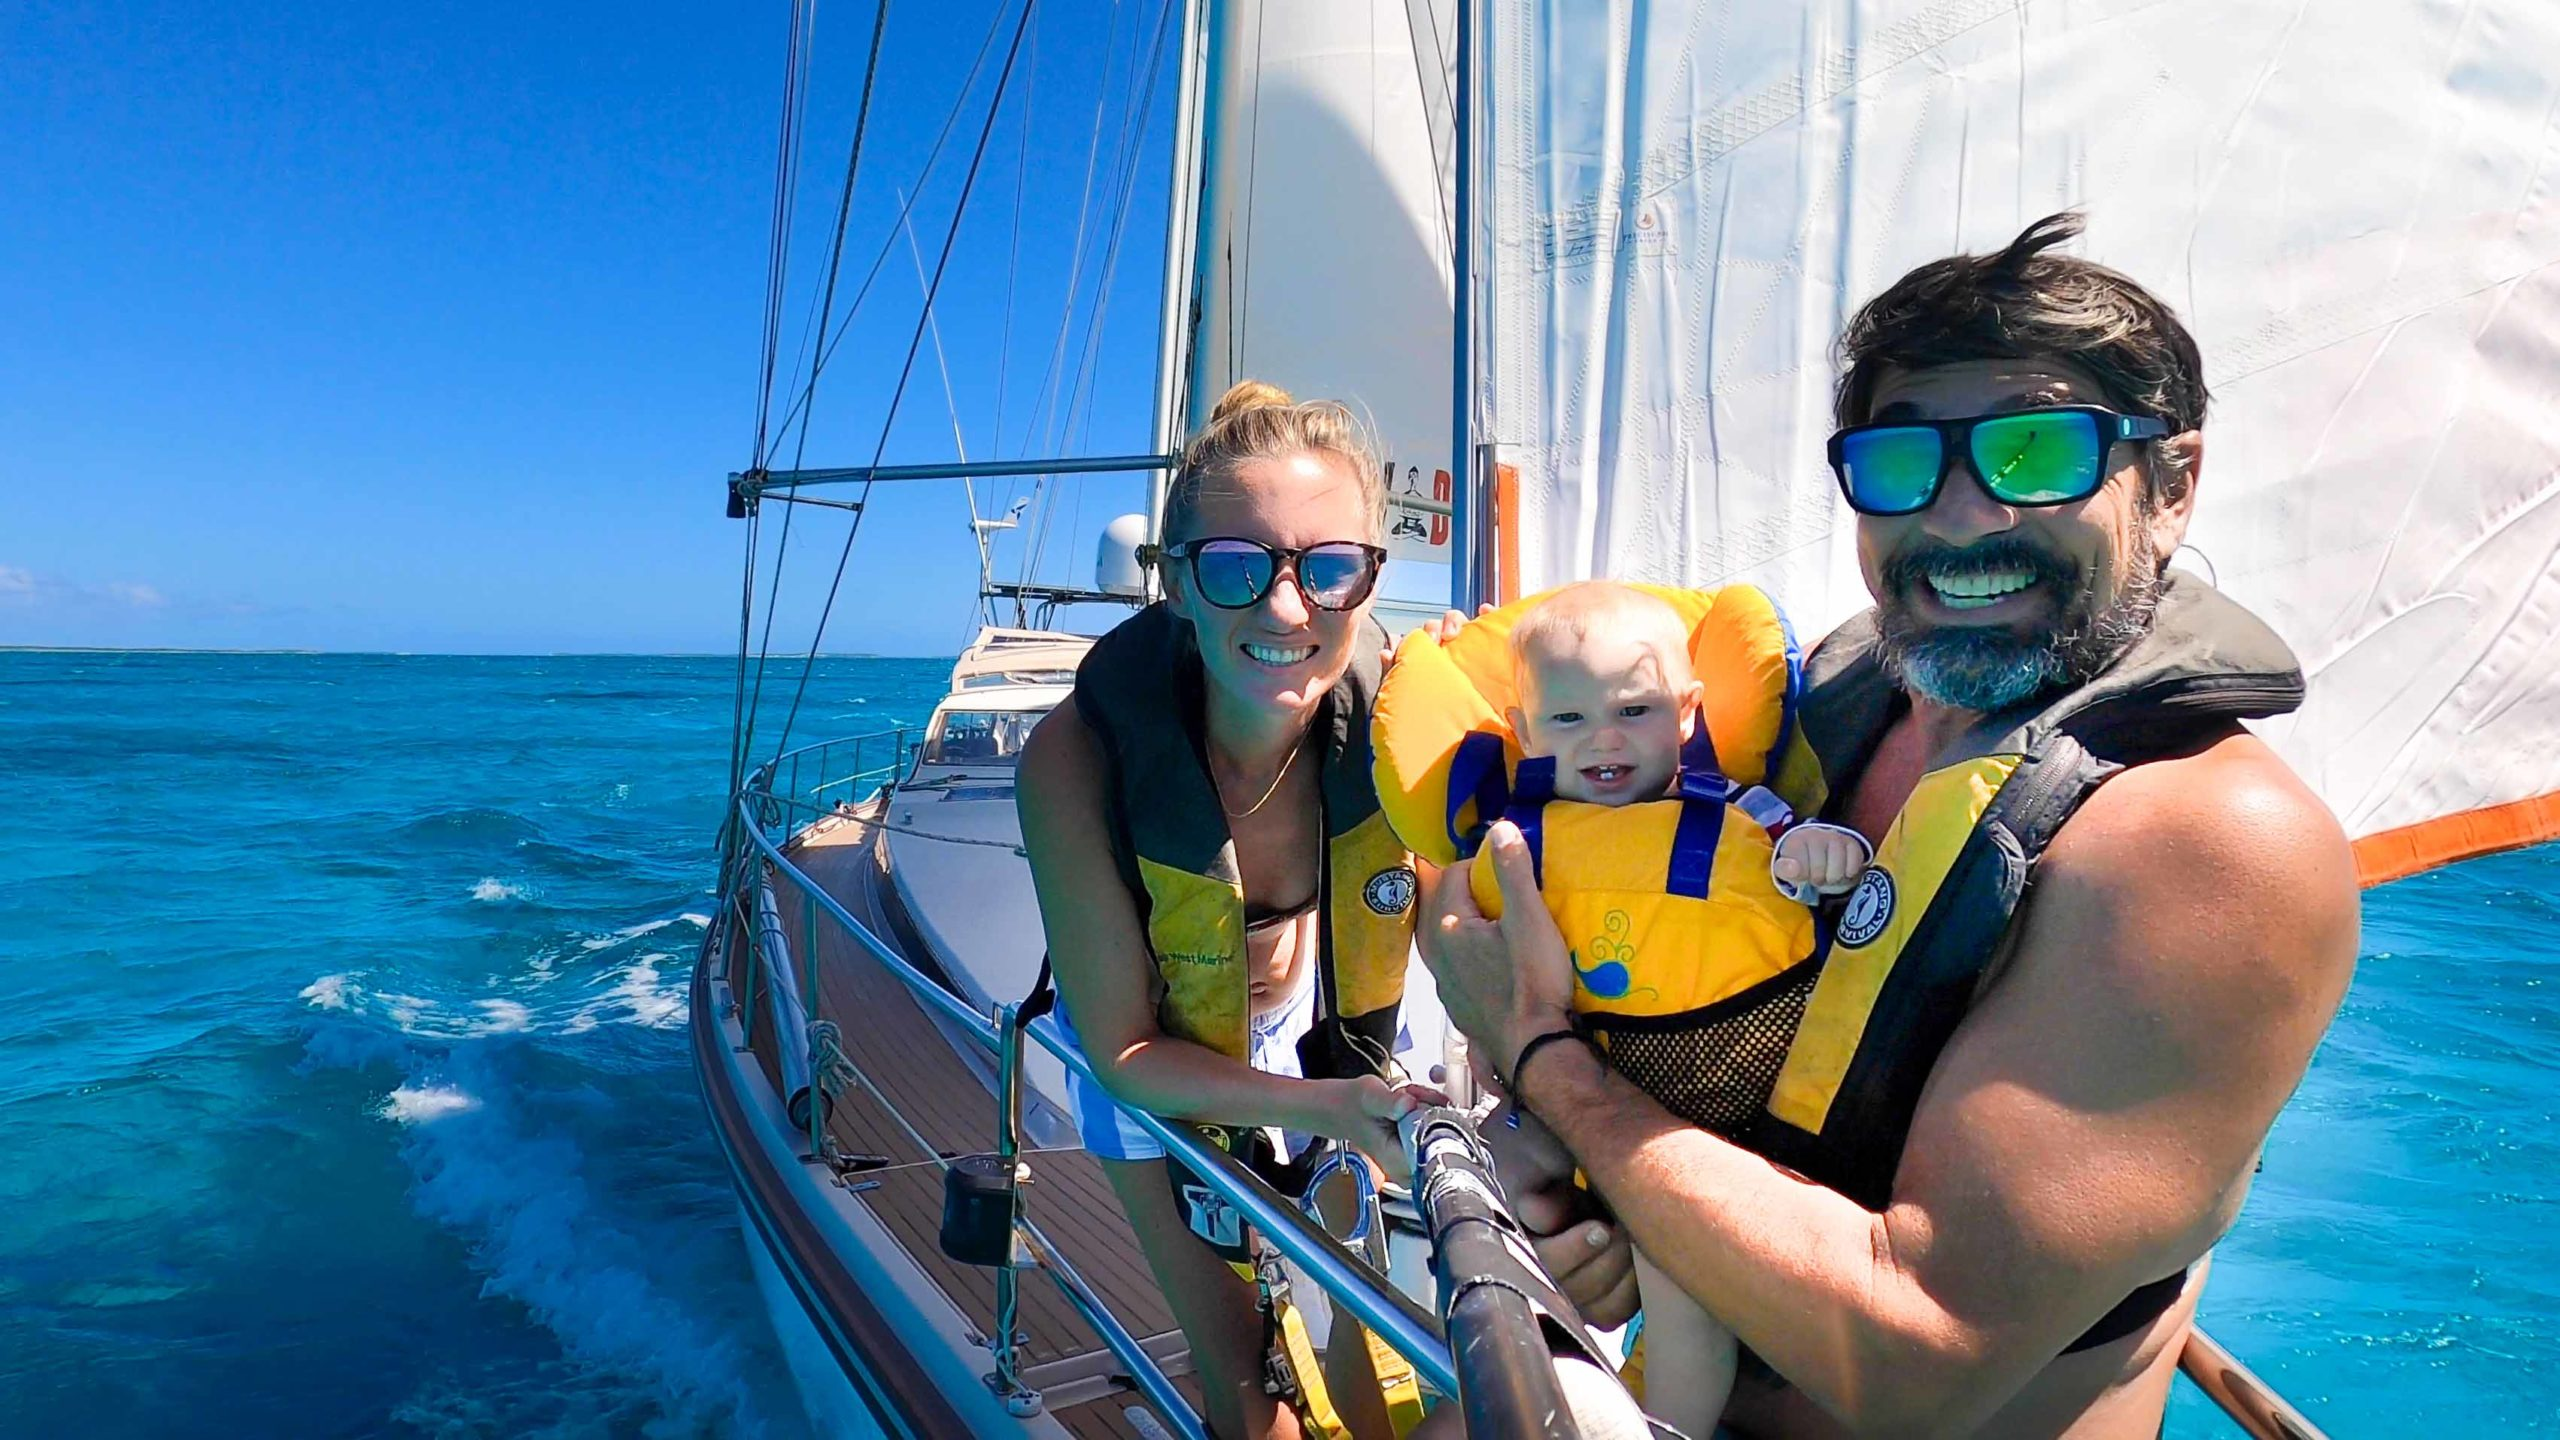 Sailing vloggers defend isolation in Bahamian waters